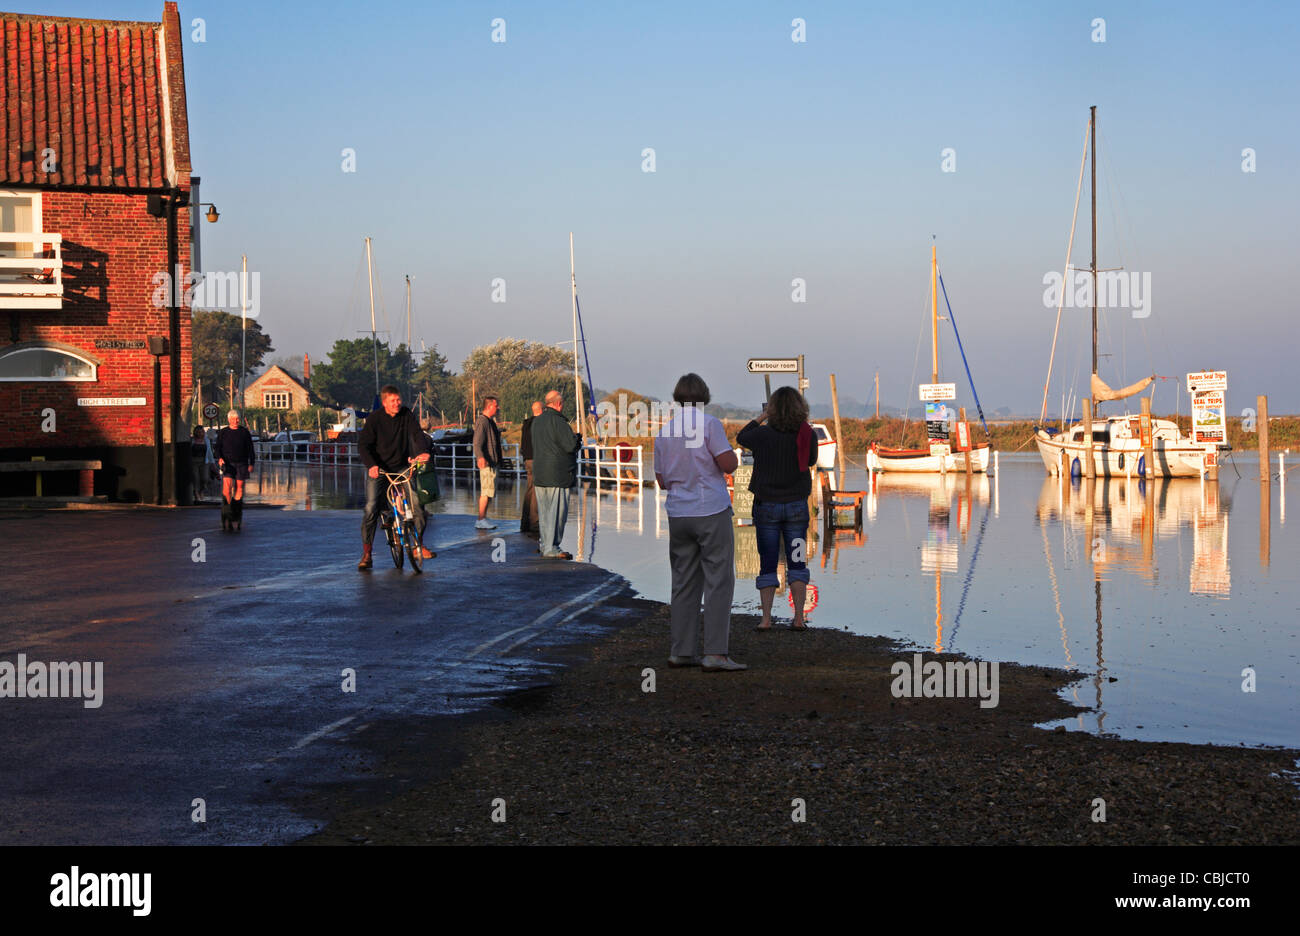 A group of onlookers observing a high spring tide at the quay at Blakeney, Norfolk, England, United Kingdom. - Stock Image